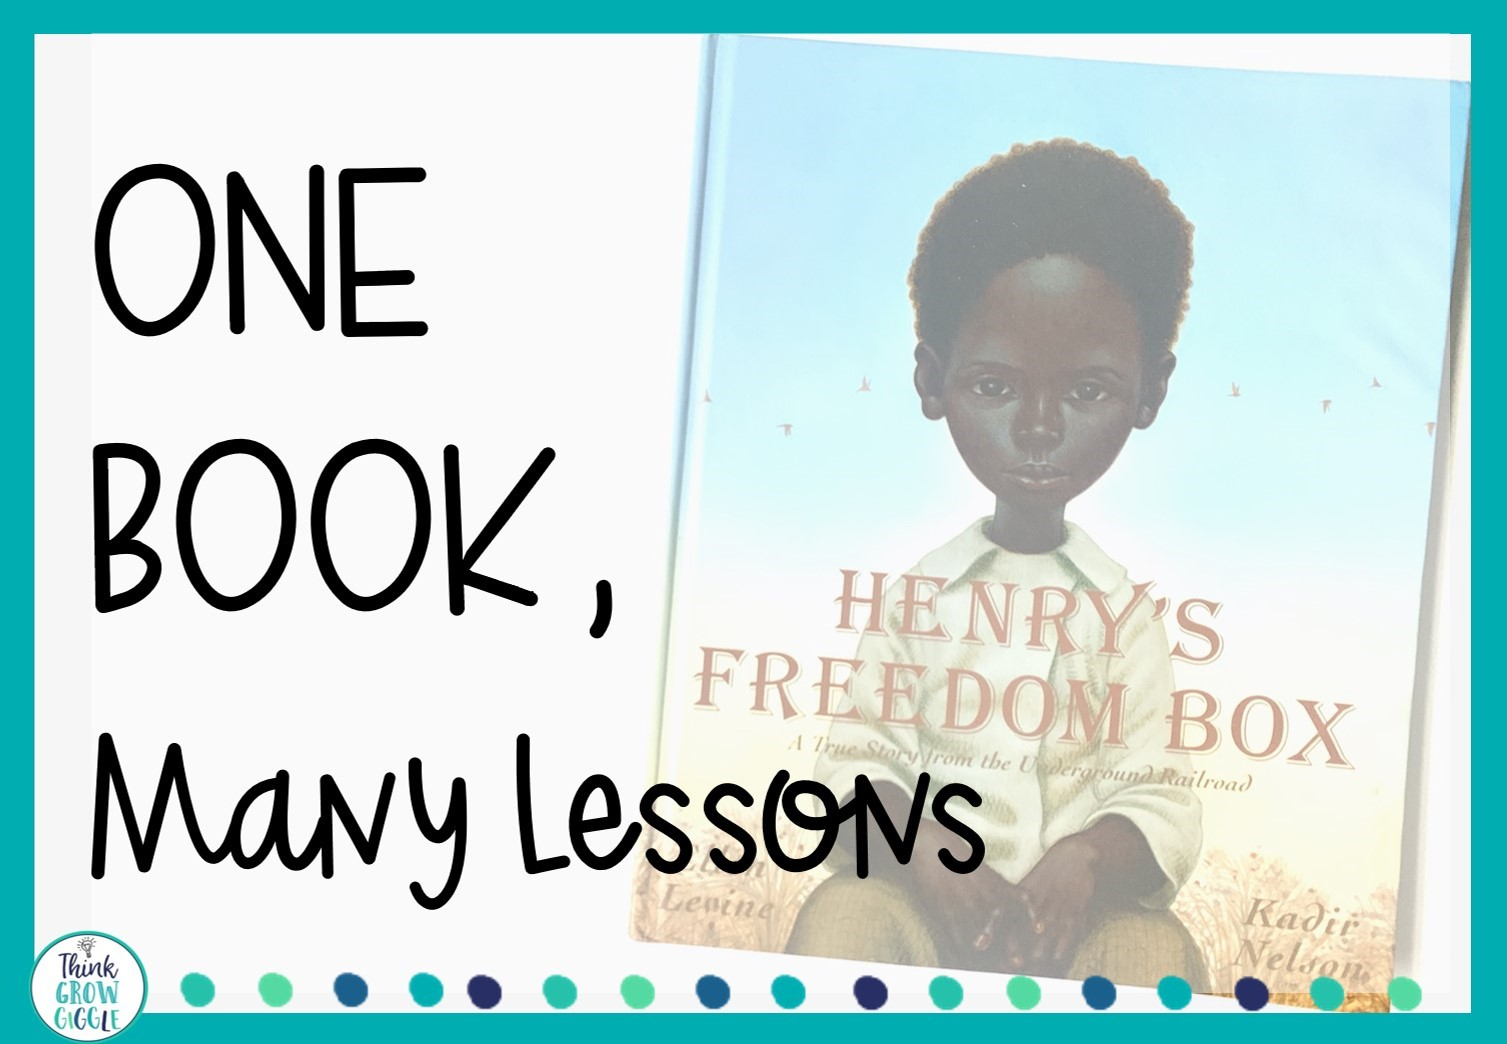 henry's freedom box lesson ideas